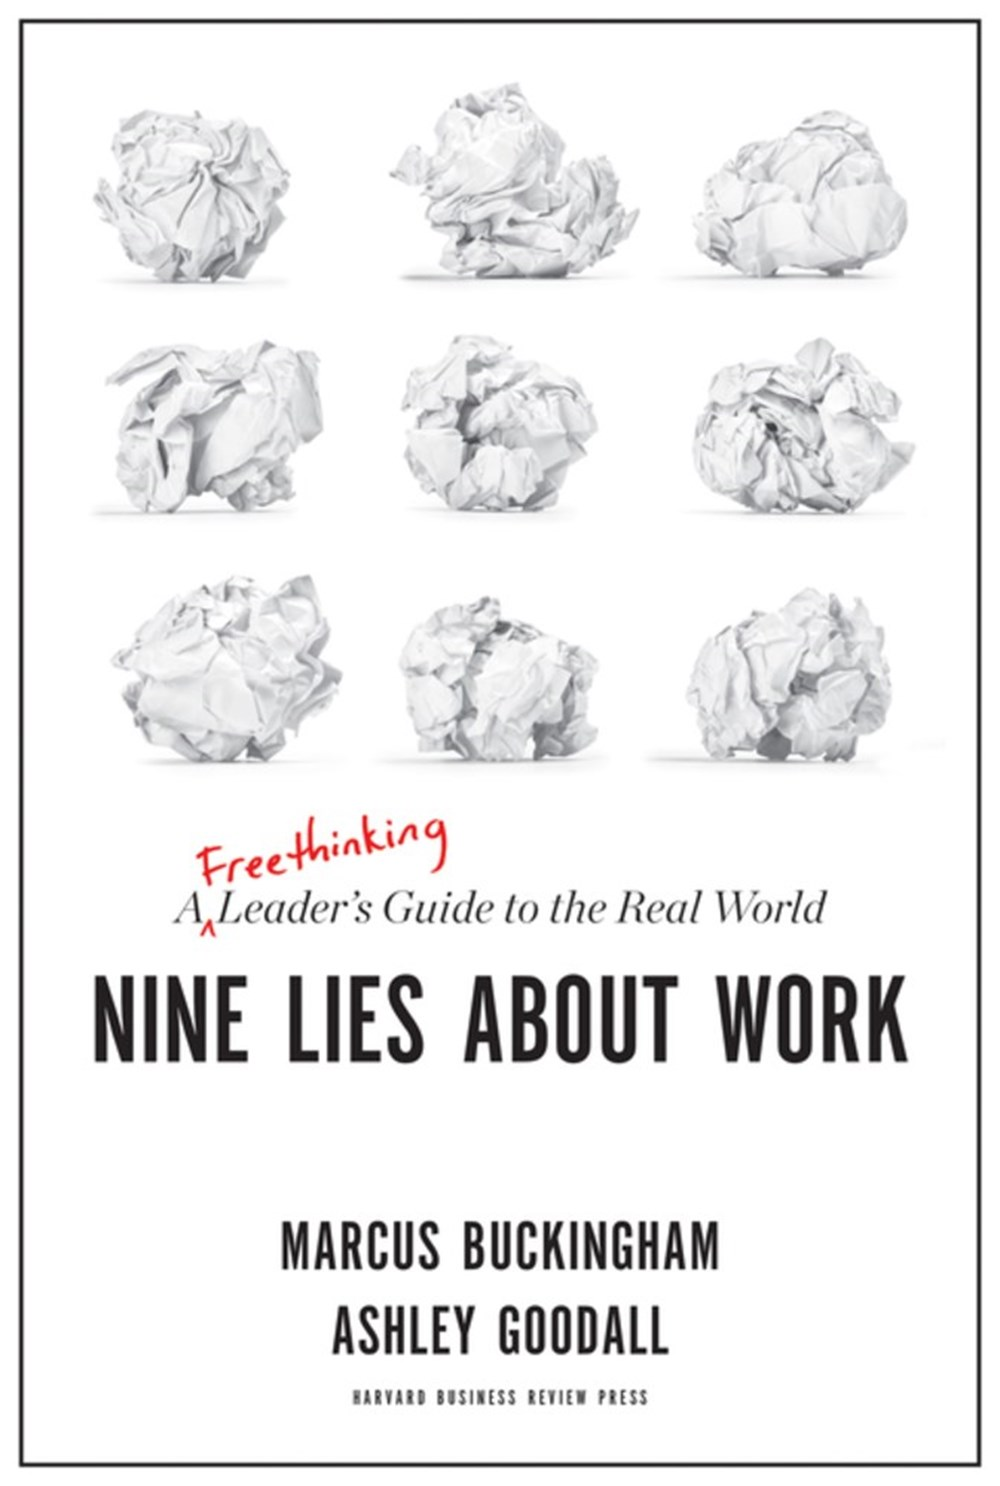 Nine Lies About Work A Freethinking Leader's Guide to the Real World